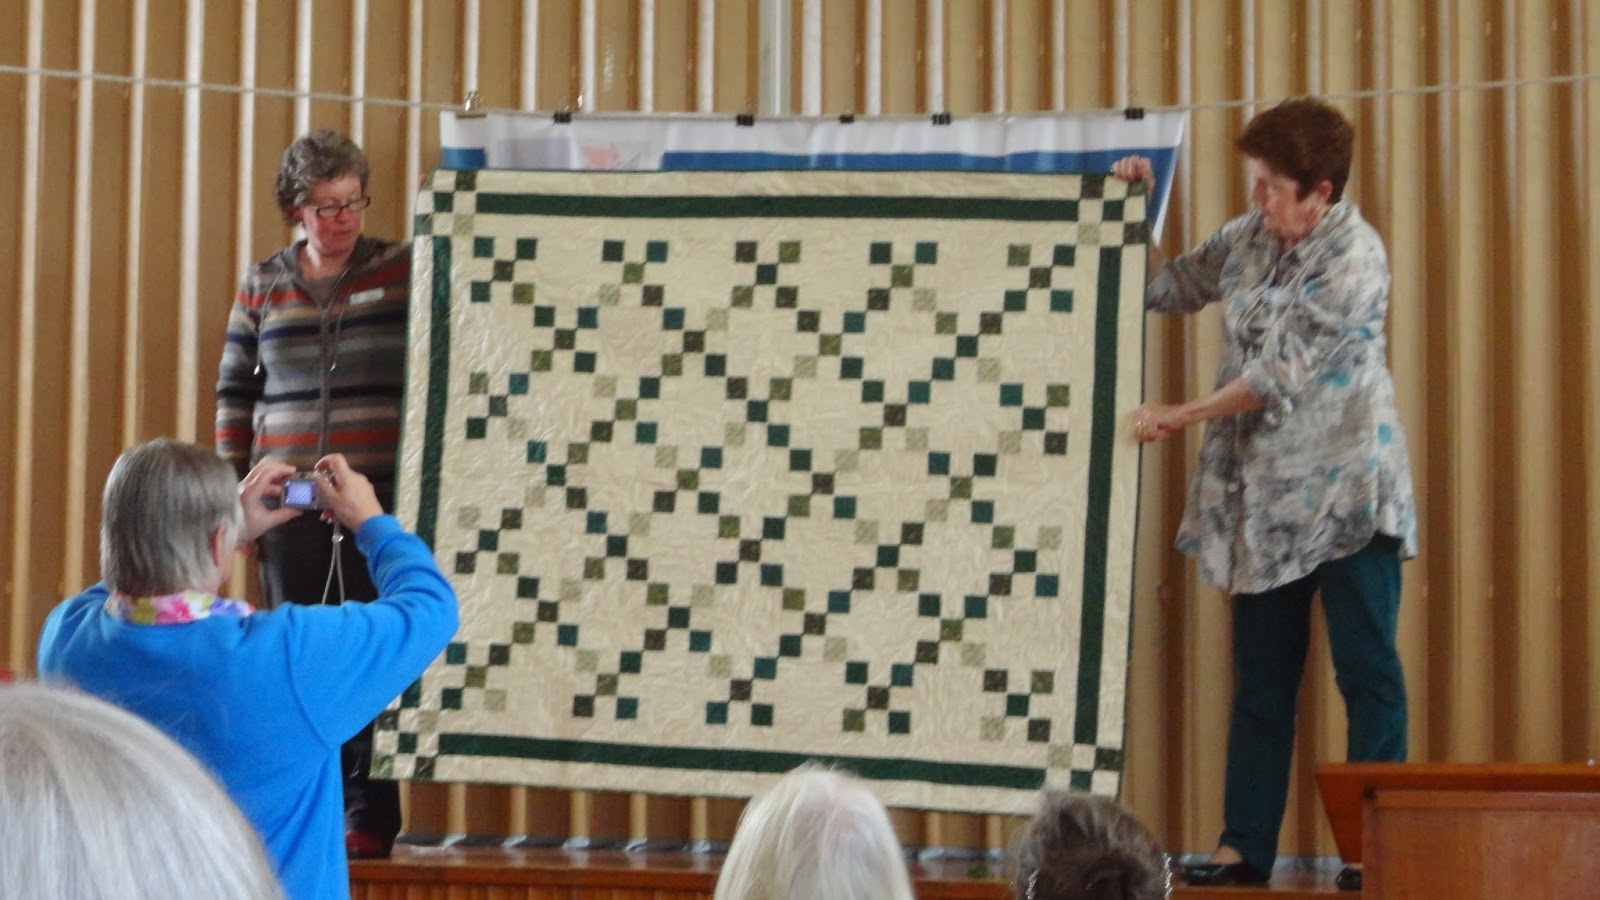 Sew Many Quilts - Too Little Time: My Melbourne Quilt Guild : quilt guild games - Adamdwight.com